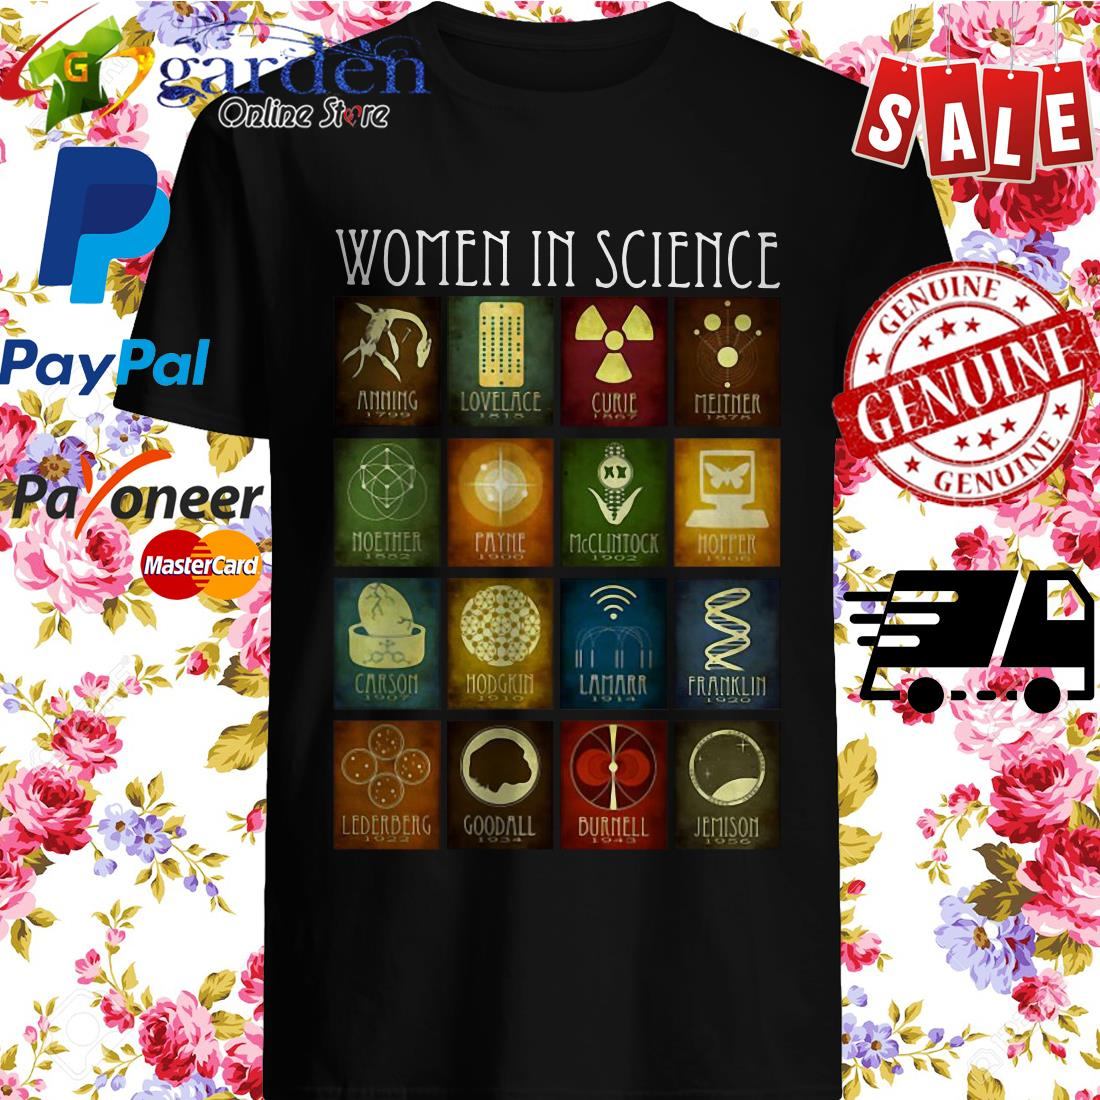 Women In Science Amming Lovelace Curie Shirt